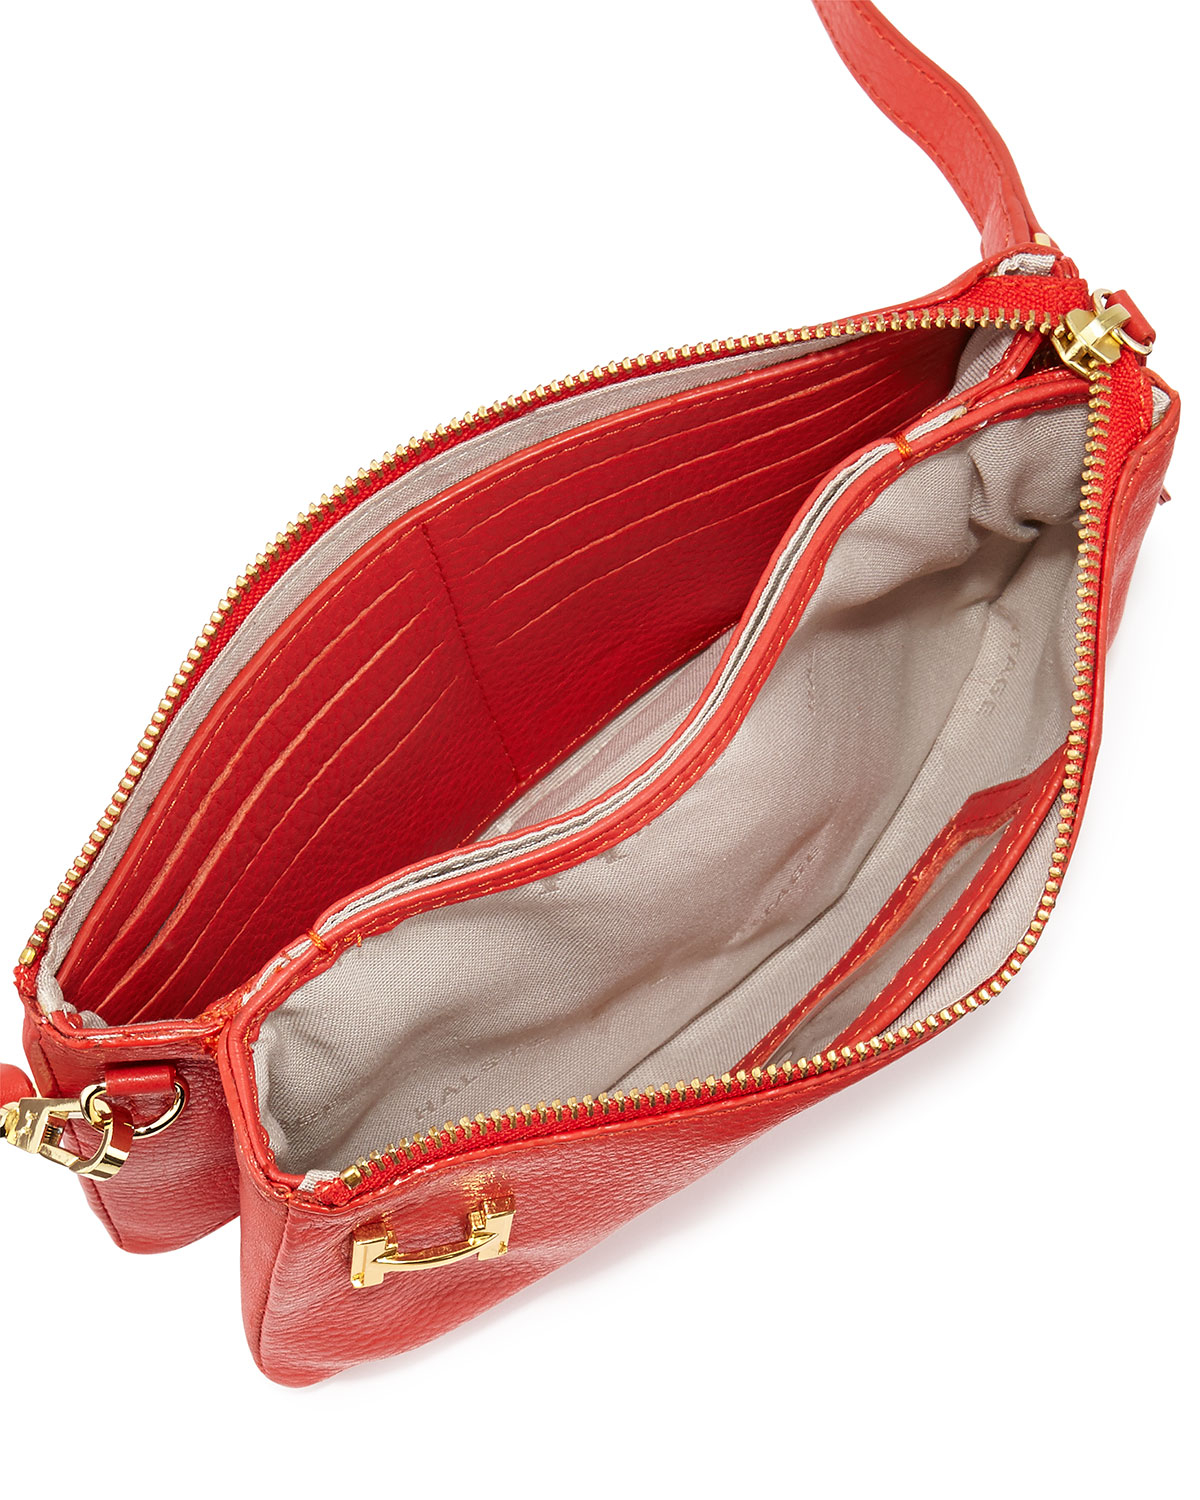 d7568e24bd Lyst - Halston Leather Double-Gusset Clutch Bag in Red